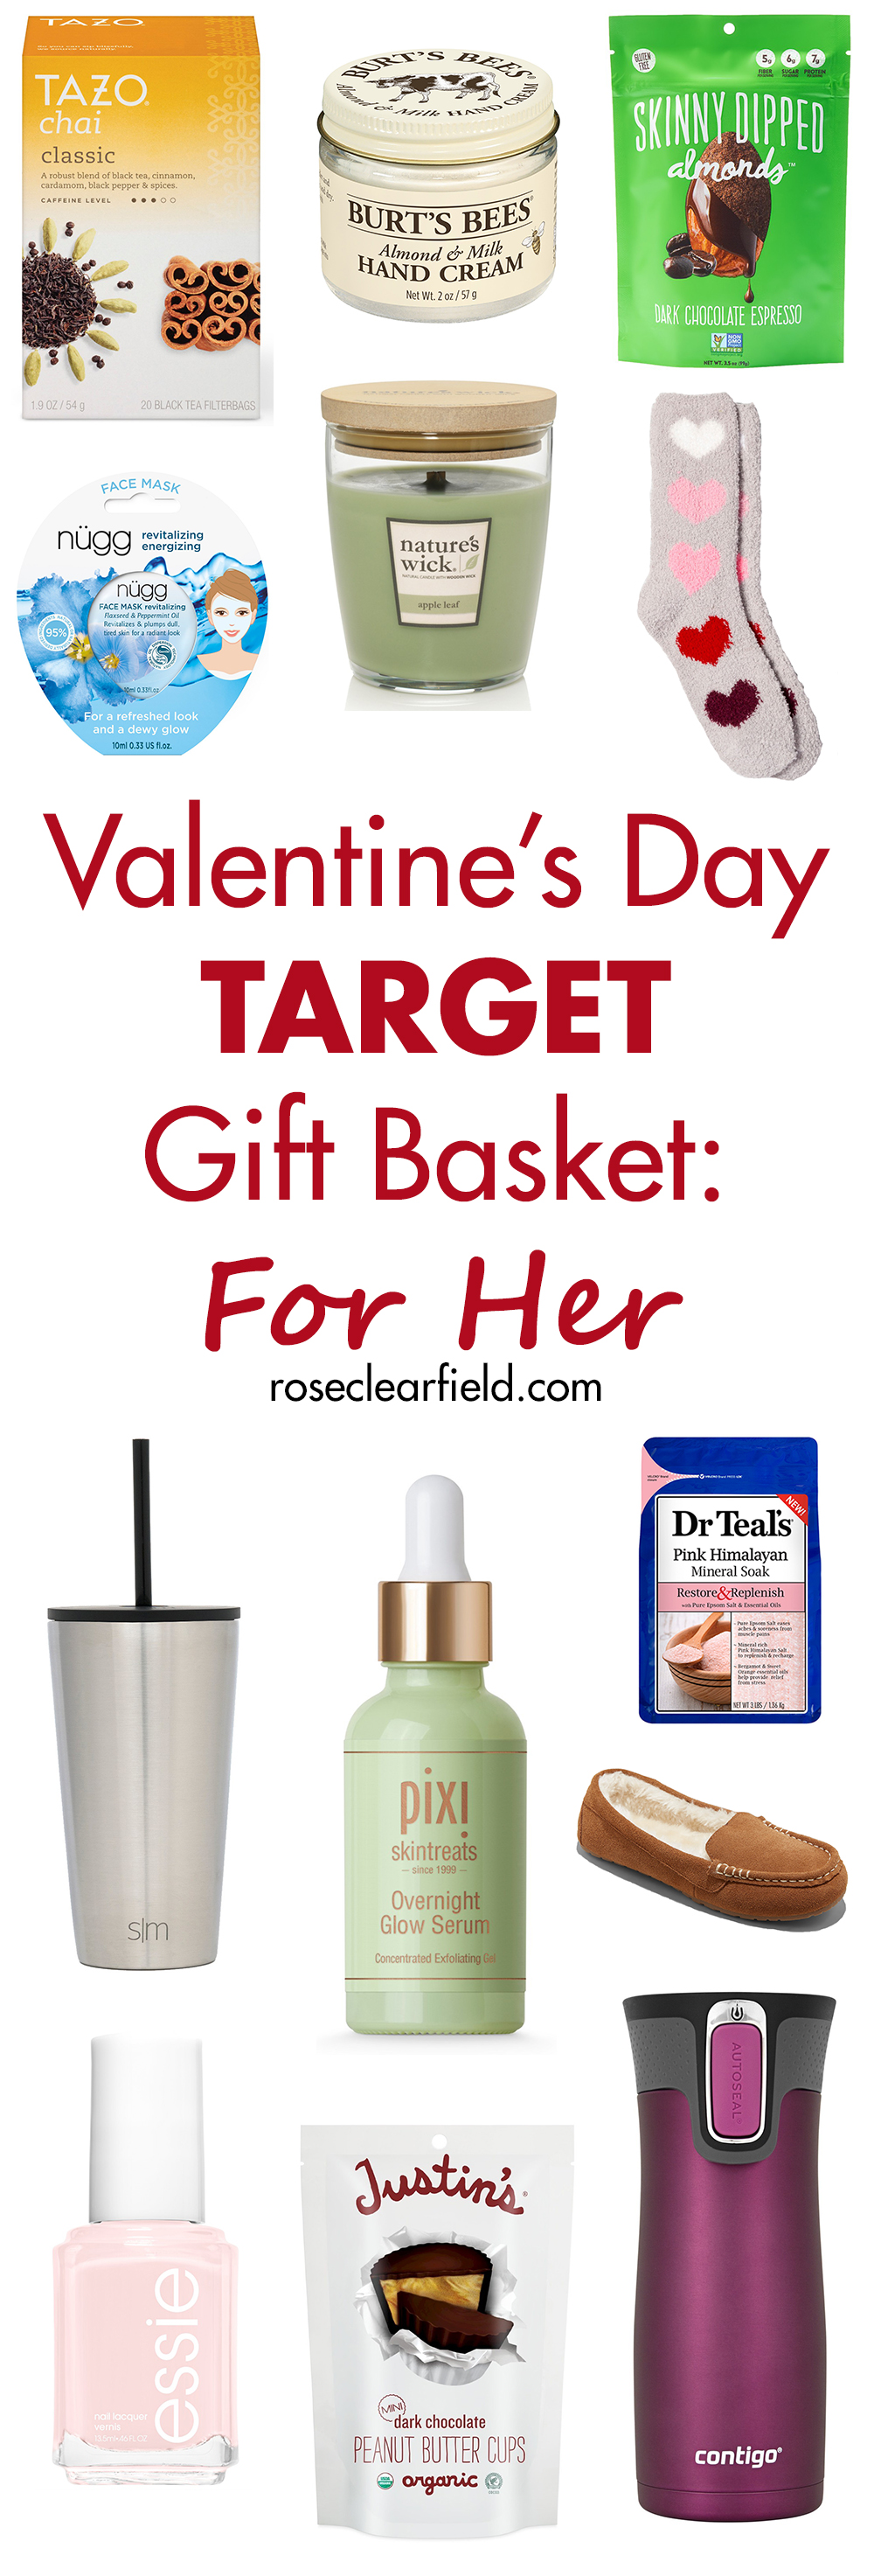 Valentine S Day Target Gift Basket For Her Rose Clearfield